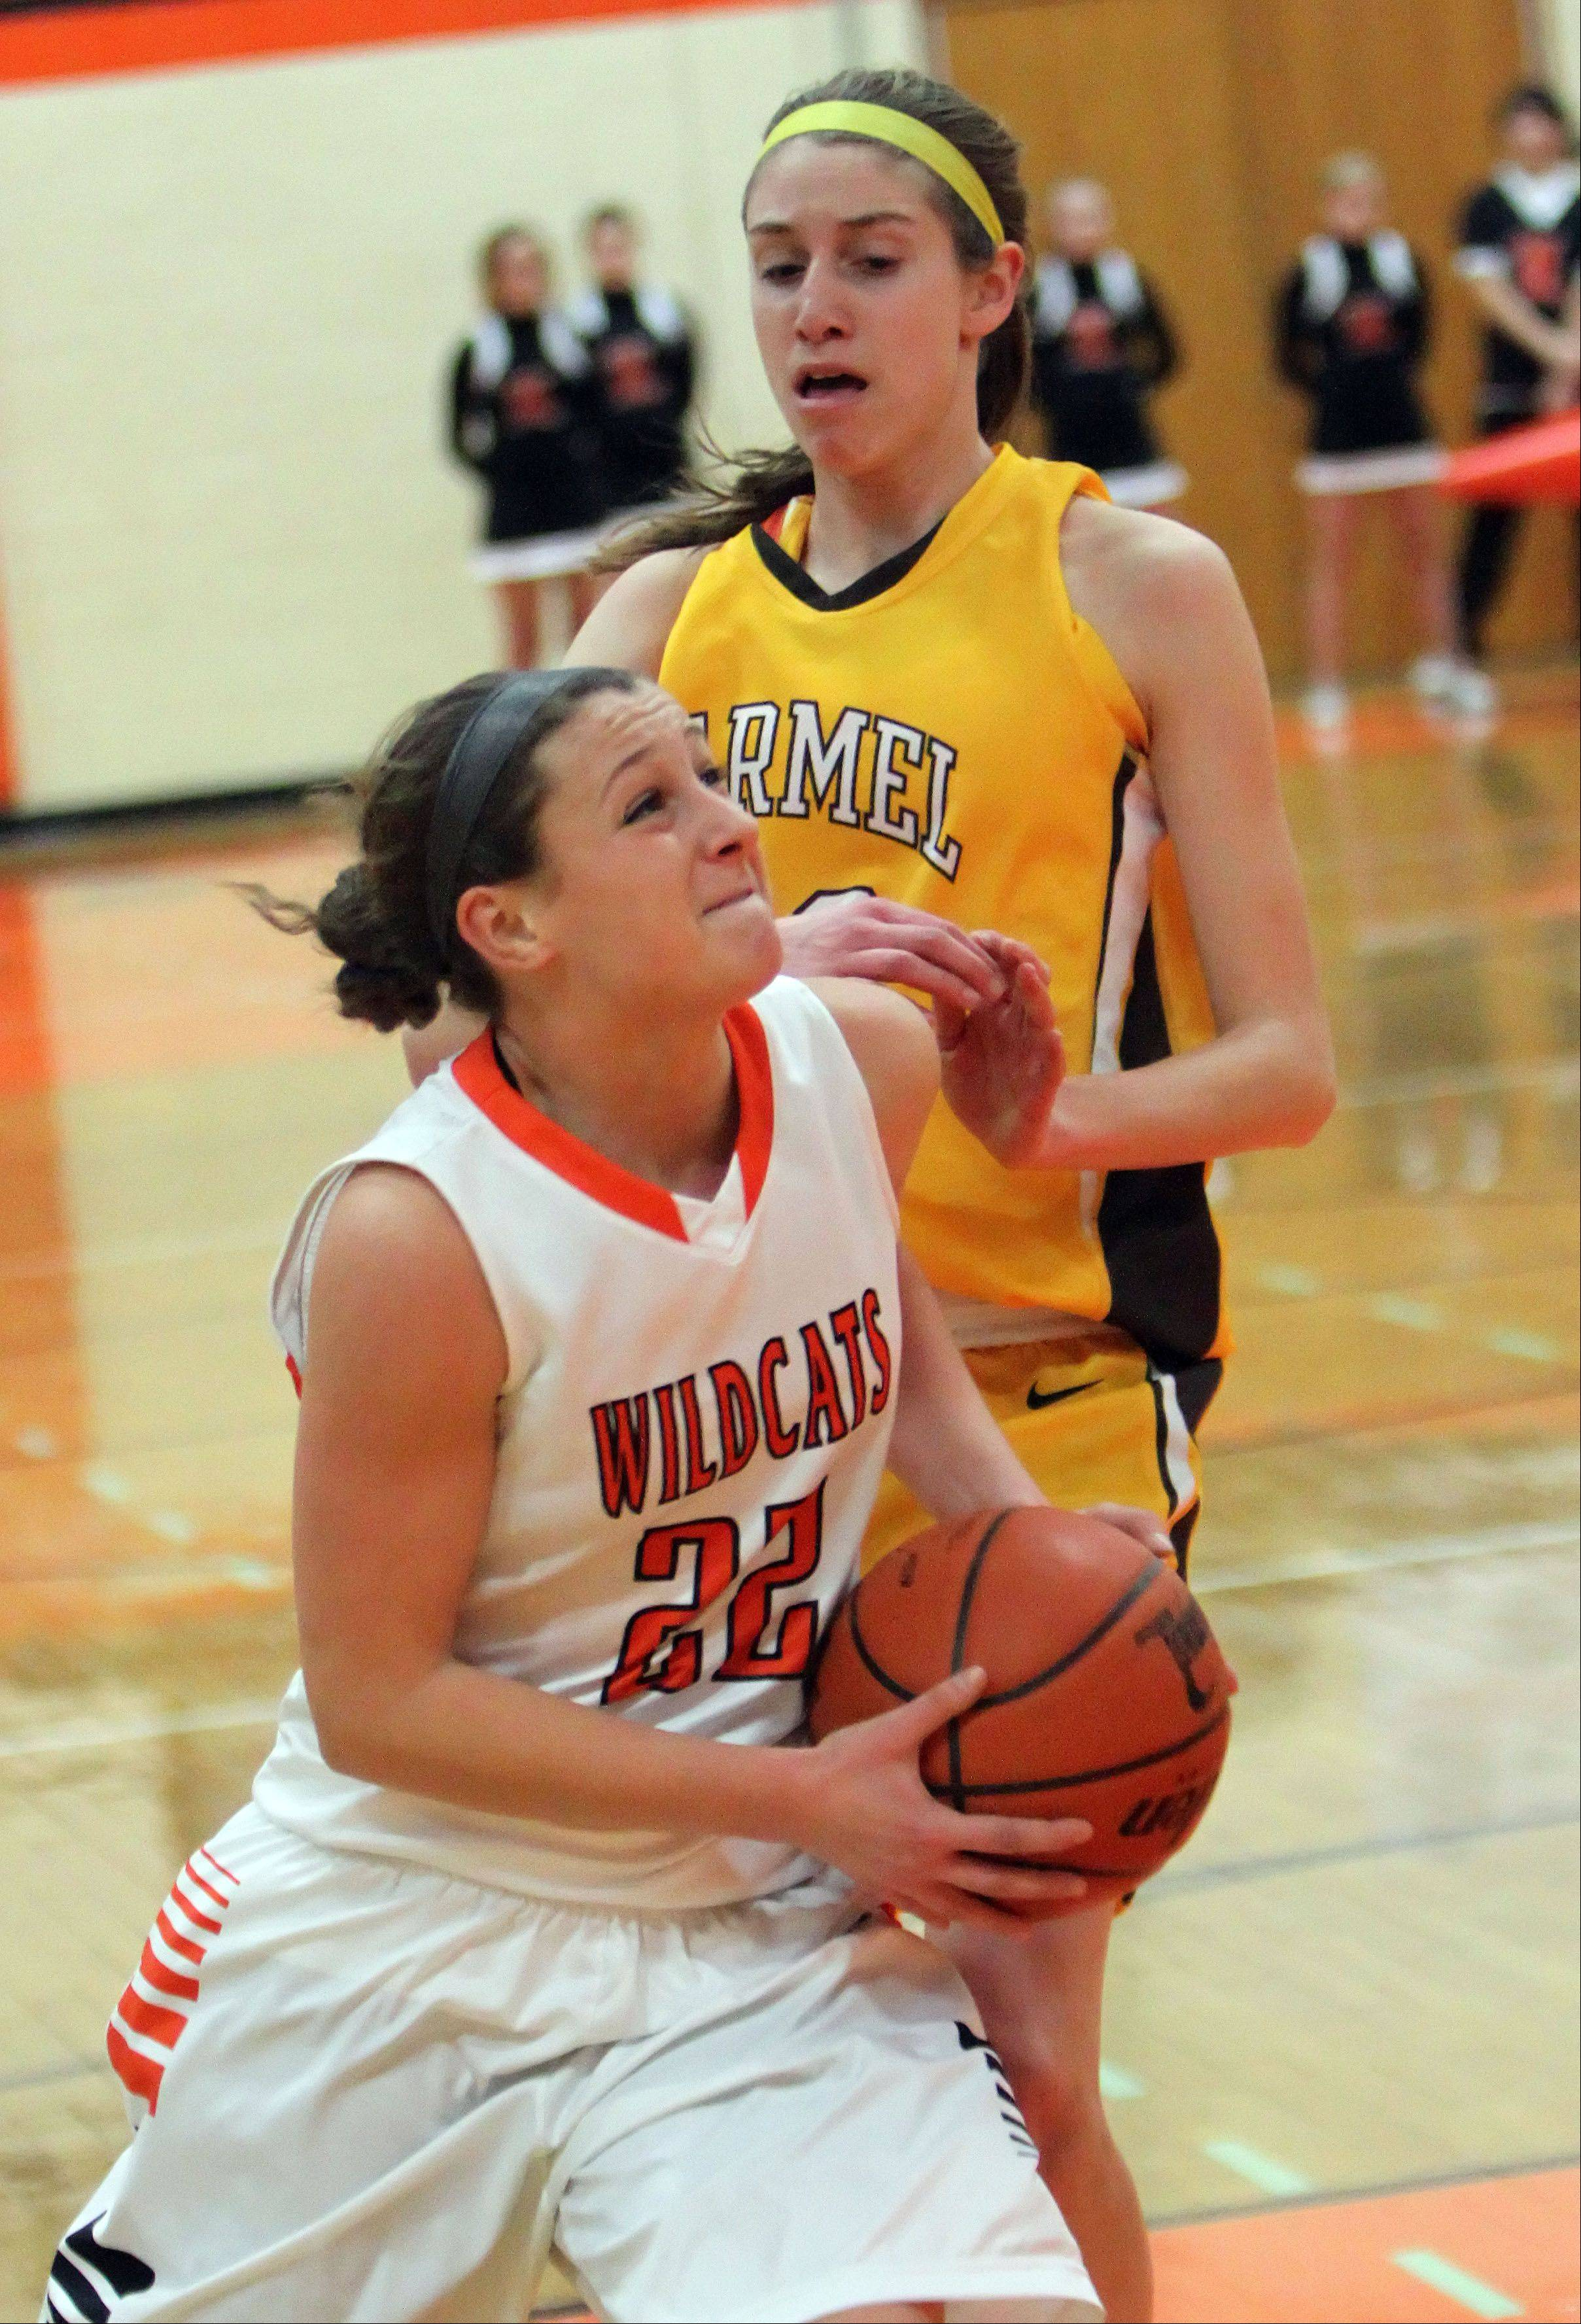 Libertyville's Olivia Mayer, left, drives on Carmel's Claire Ogrinc Wednesday night at Libertyville.